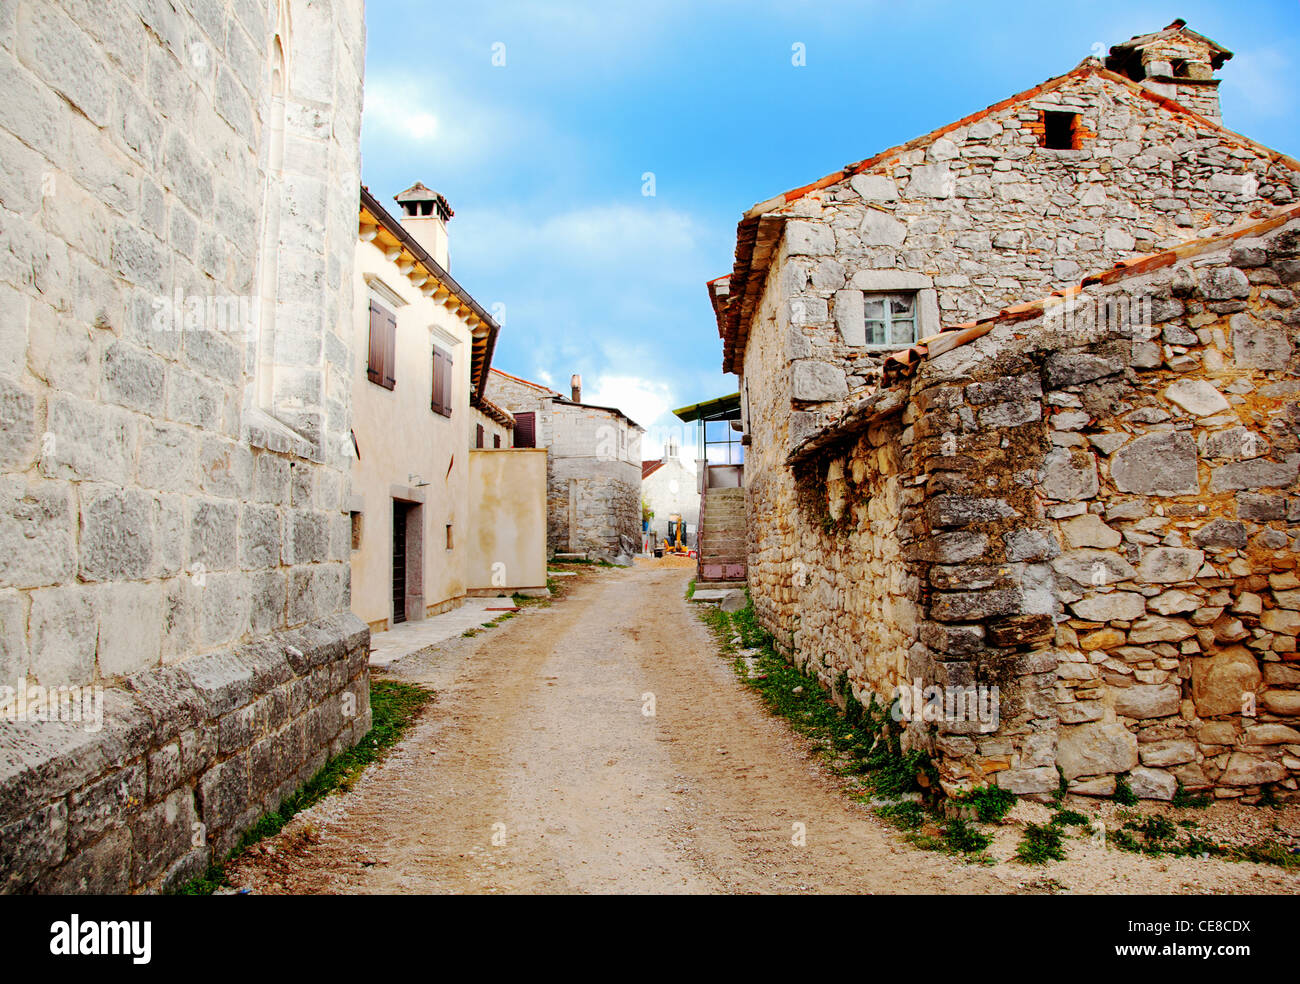 Old Buildings In Typical Medieval Italian village - Stock Image